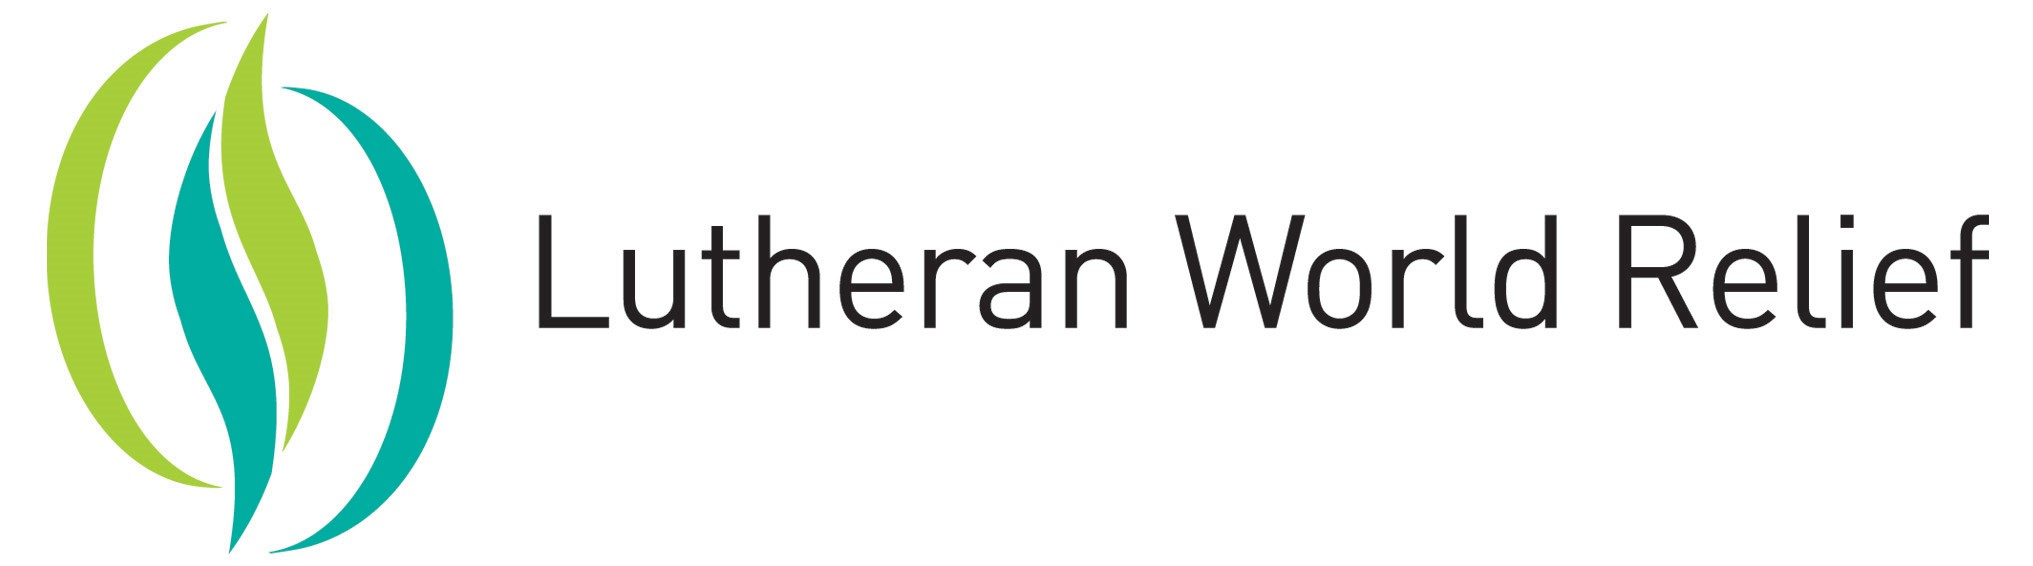 Lutheran World Relief Logo